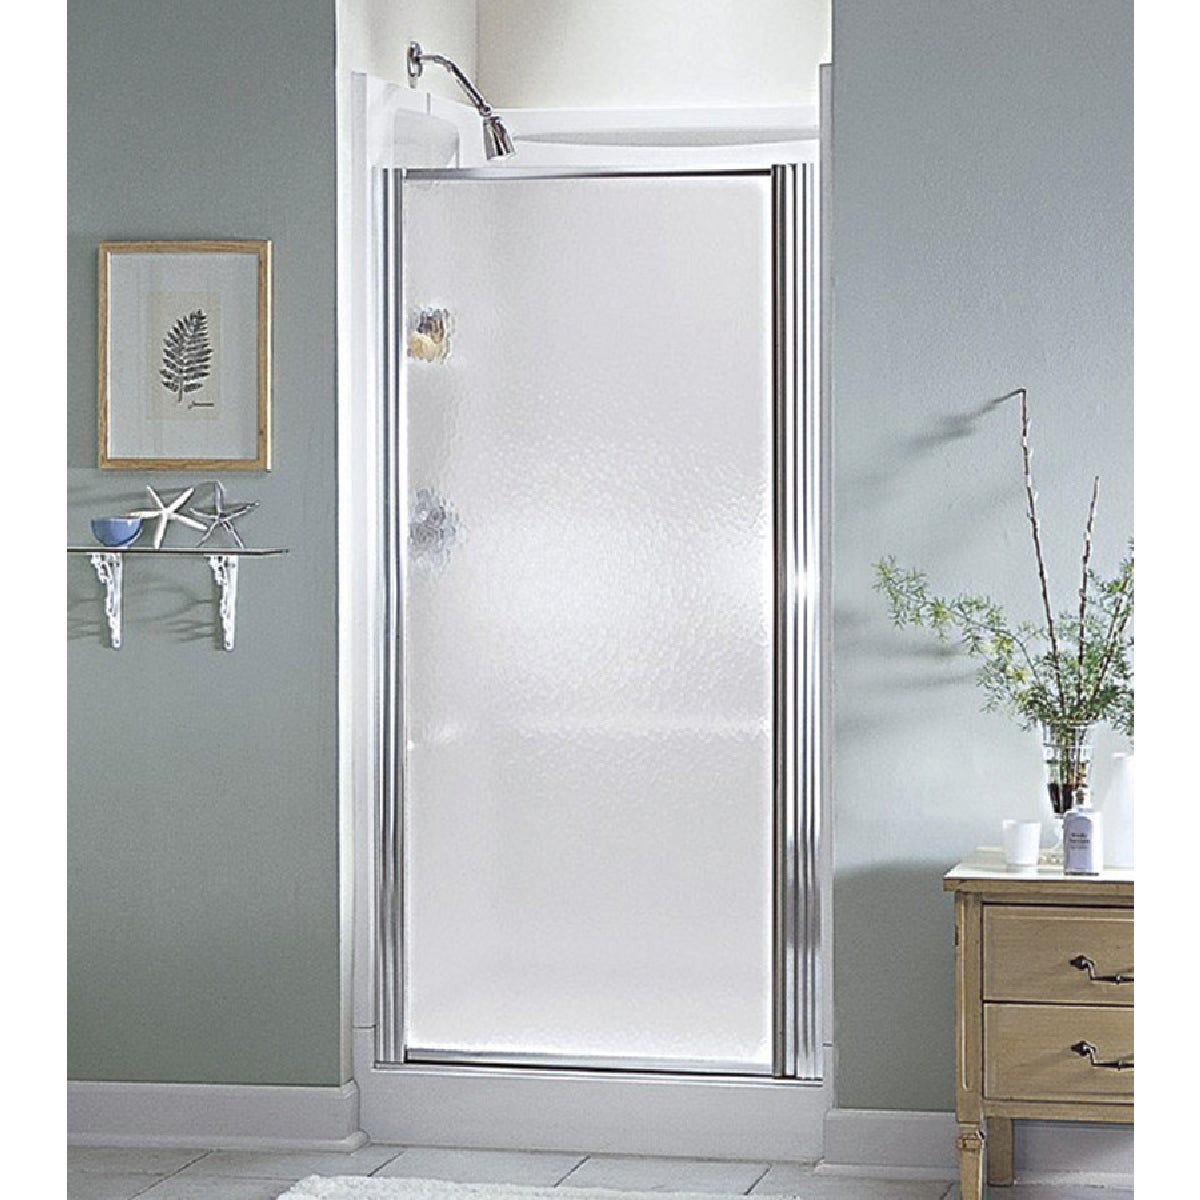 31-32-1/2 PIVOT SHW DR - 950C-32S by Sterling Doors